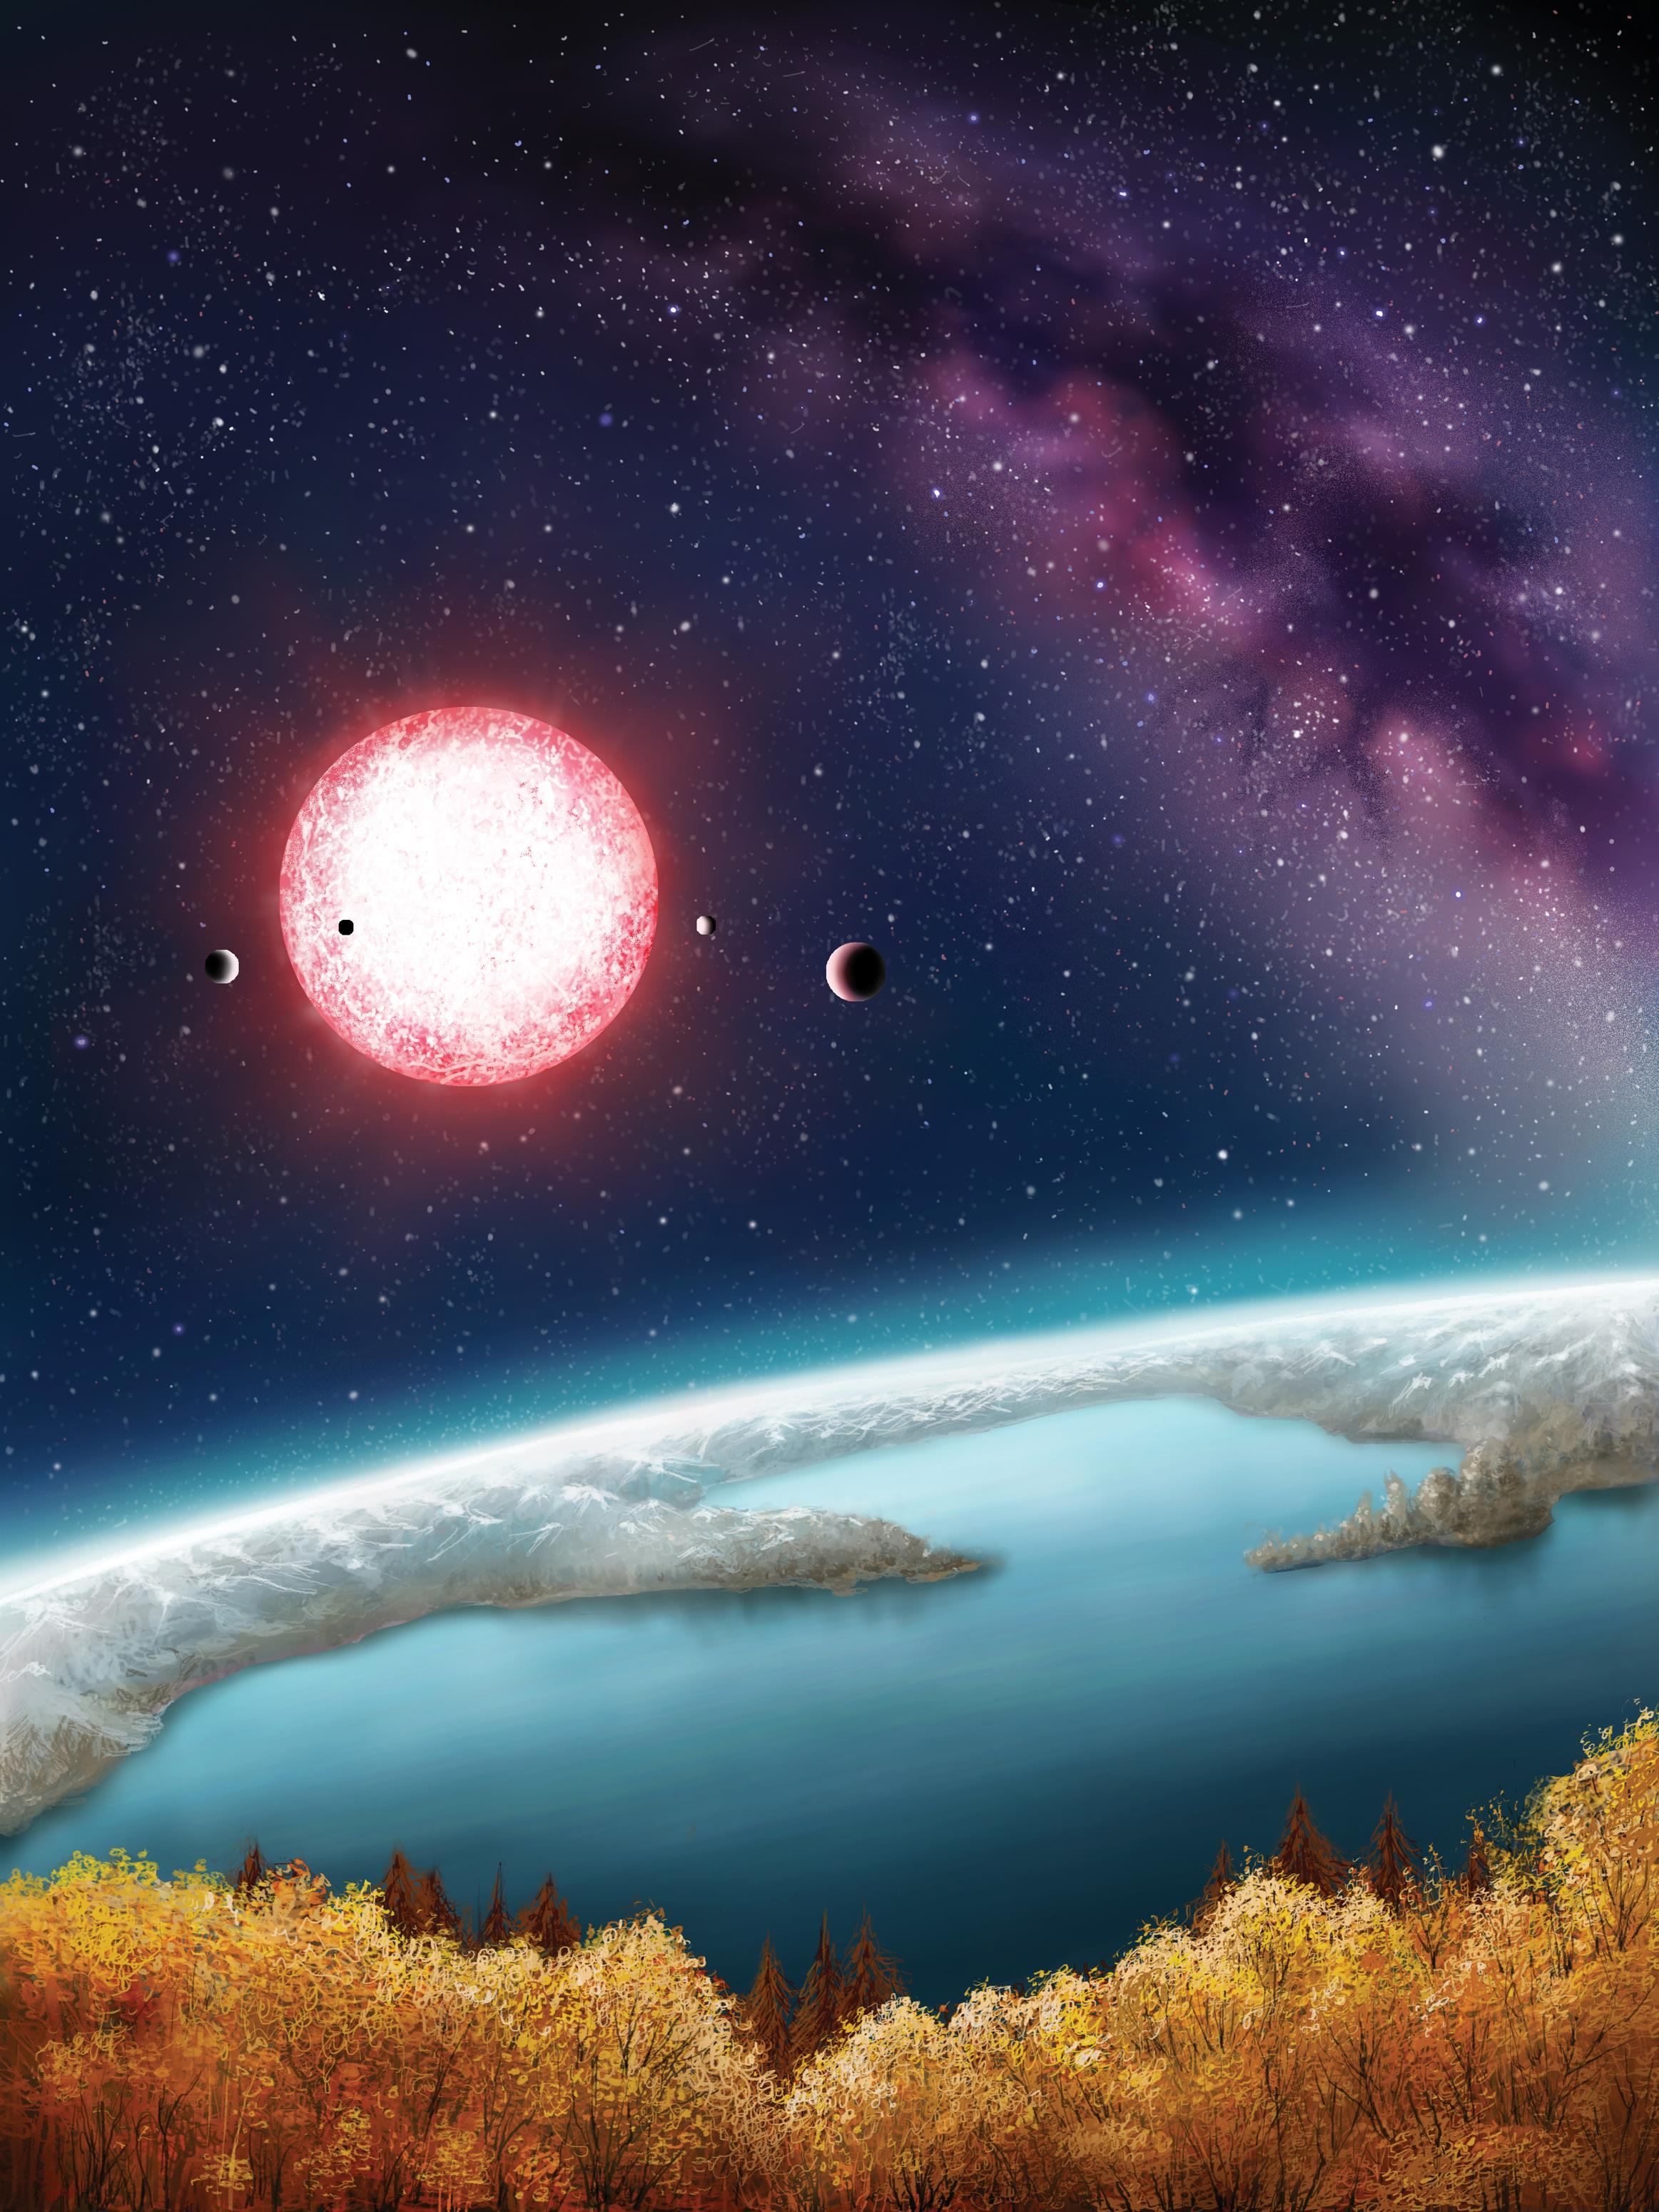 This artwork provides a speculative view of a landscape on Kepler-186f, an Earth-sized planet orbiting a faraway M-class dwarf star.